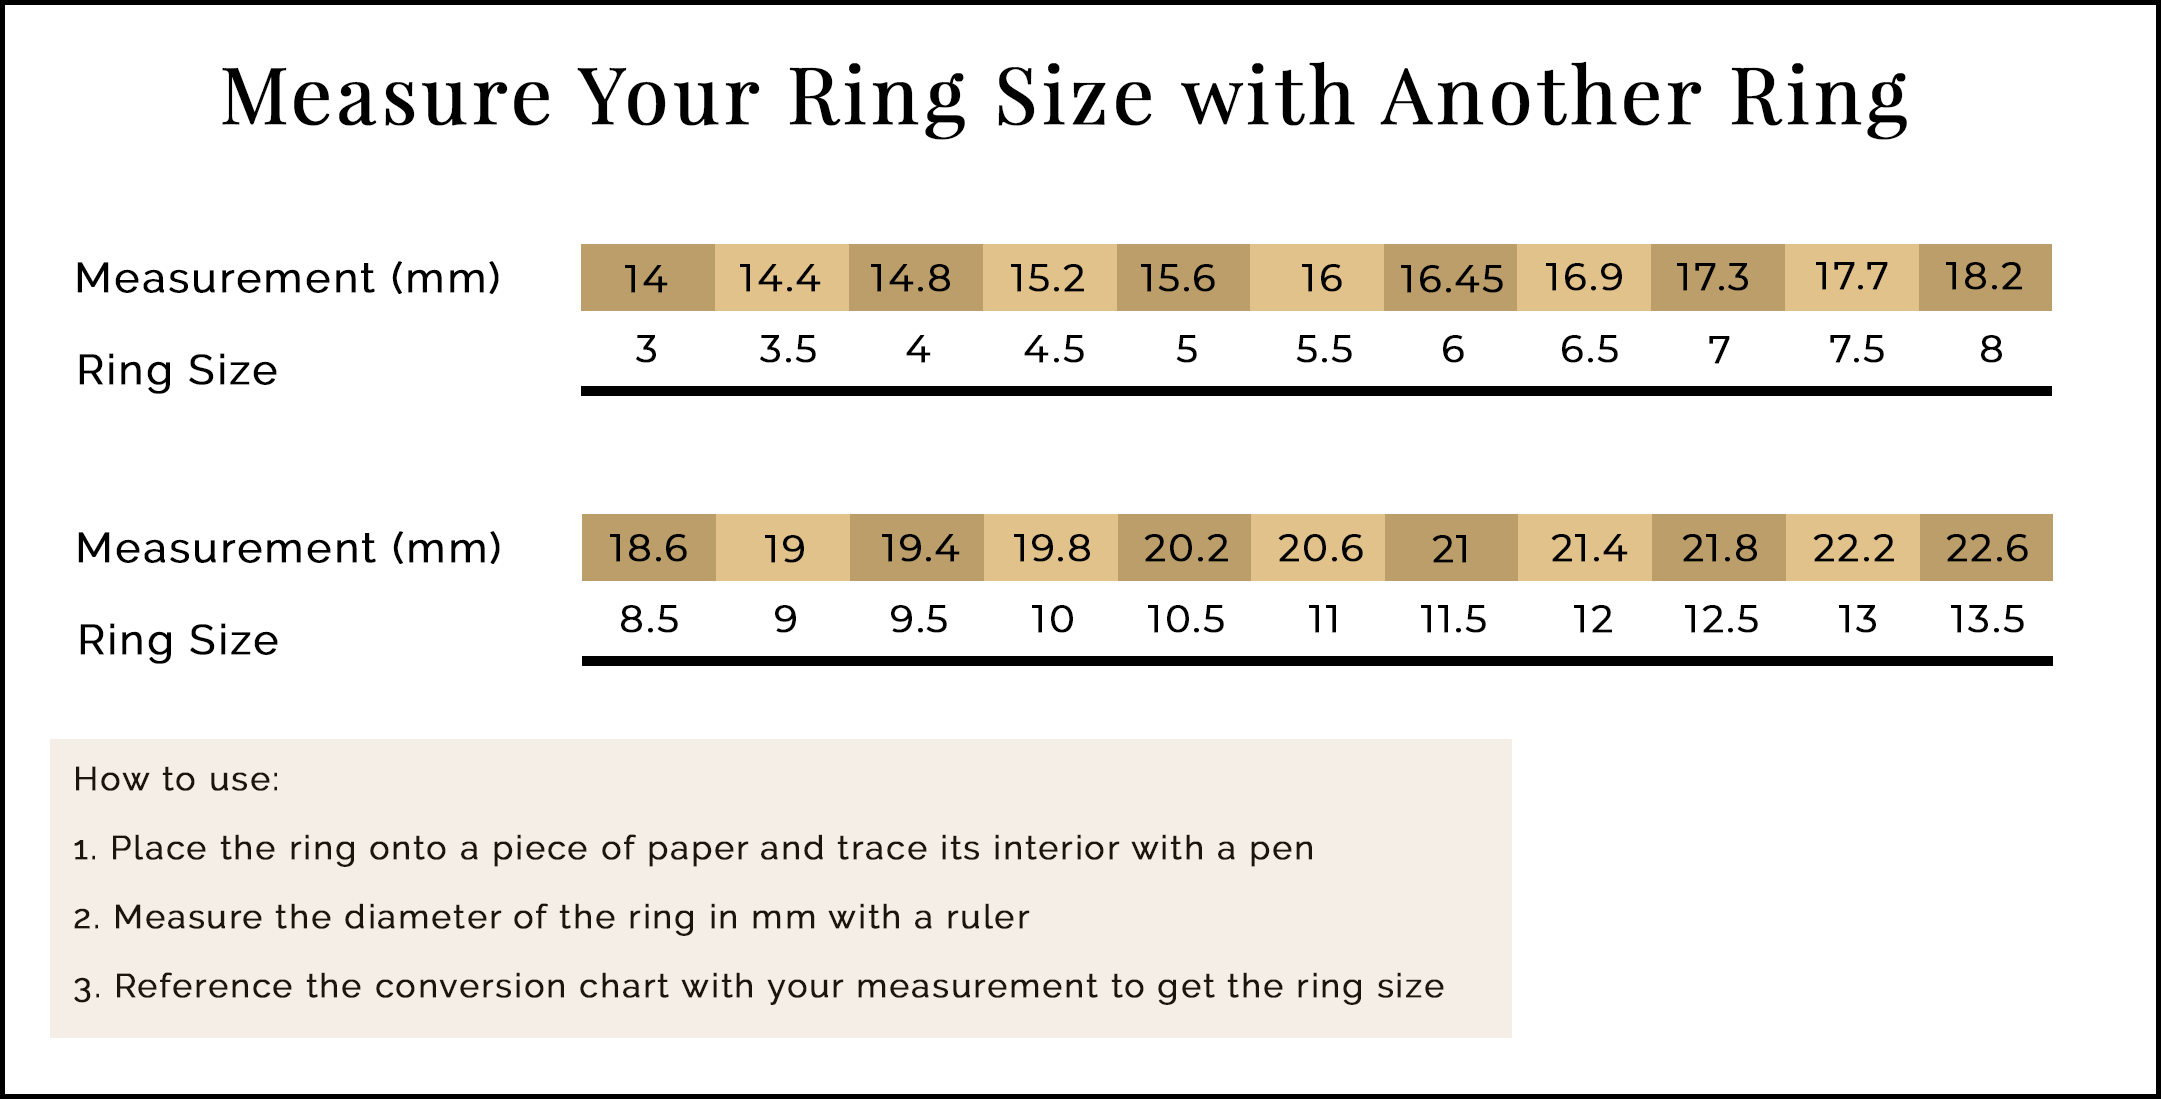 2. Measure ring size with another ring: